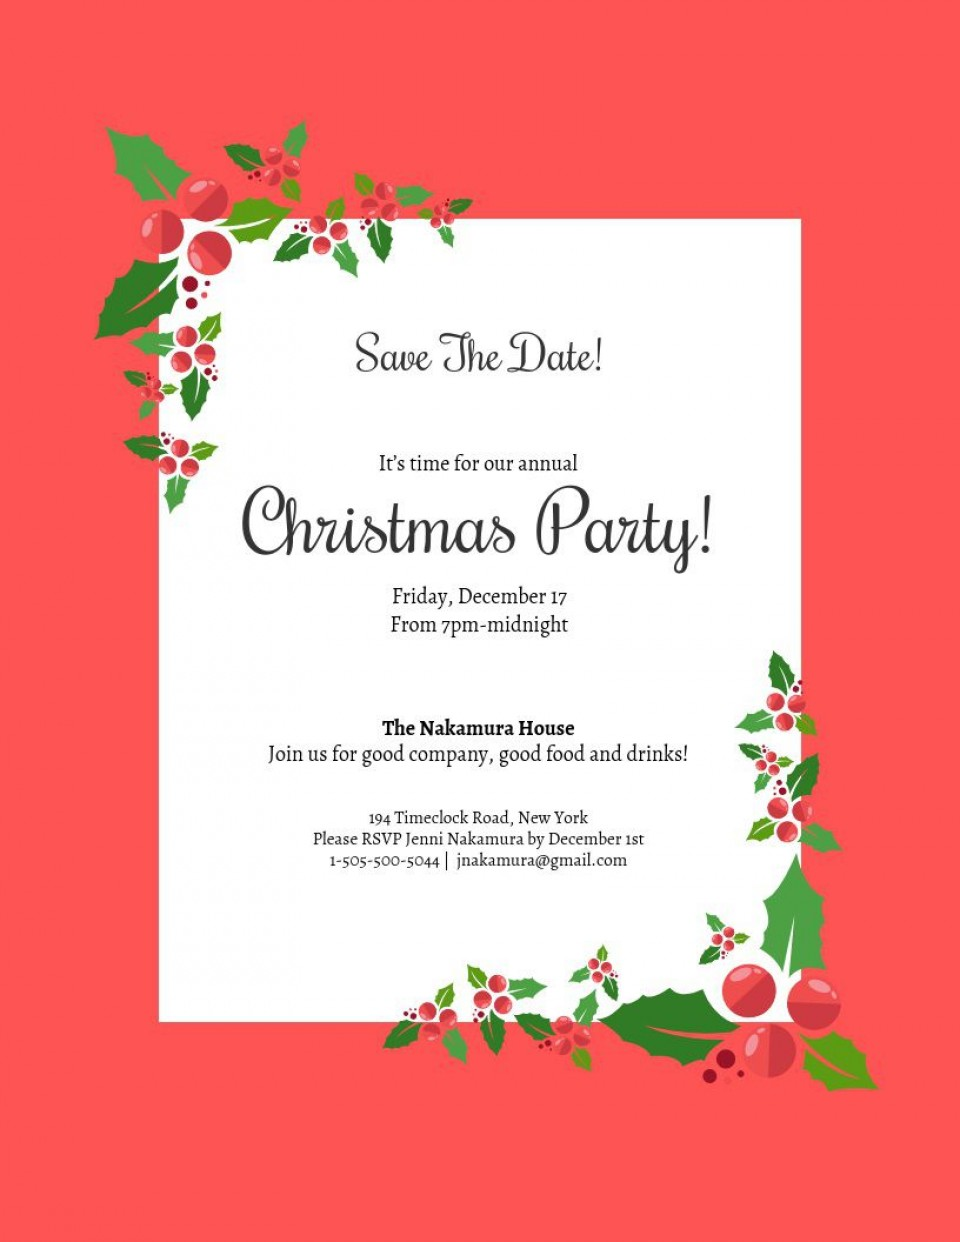 000 Frightening Christma Party Invitation Template Idea  Funny Free Download Word Card960